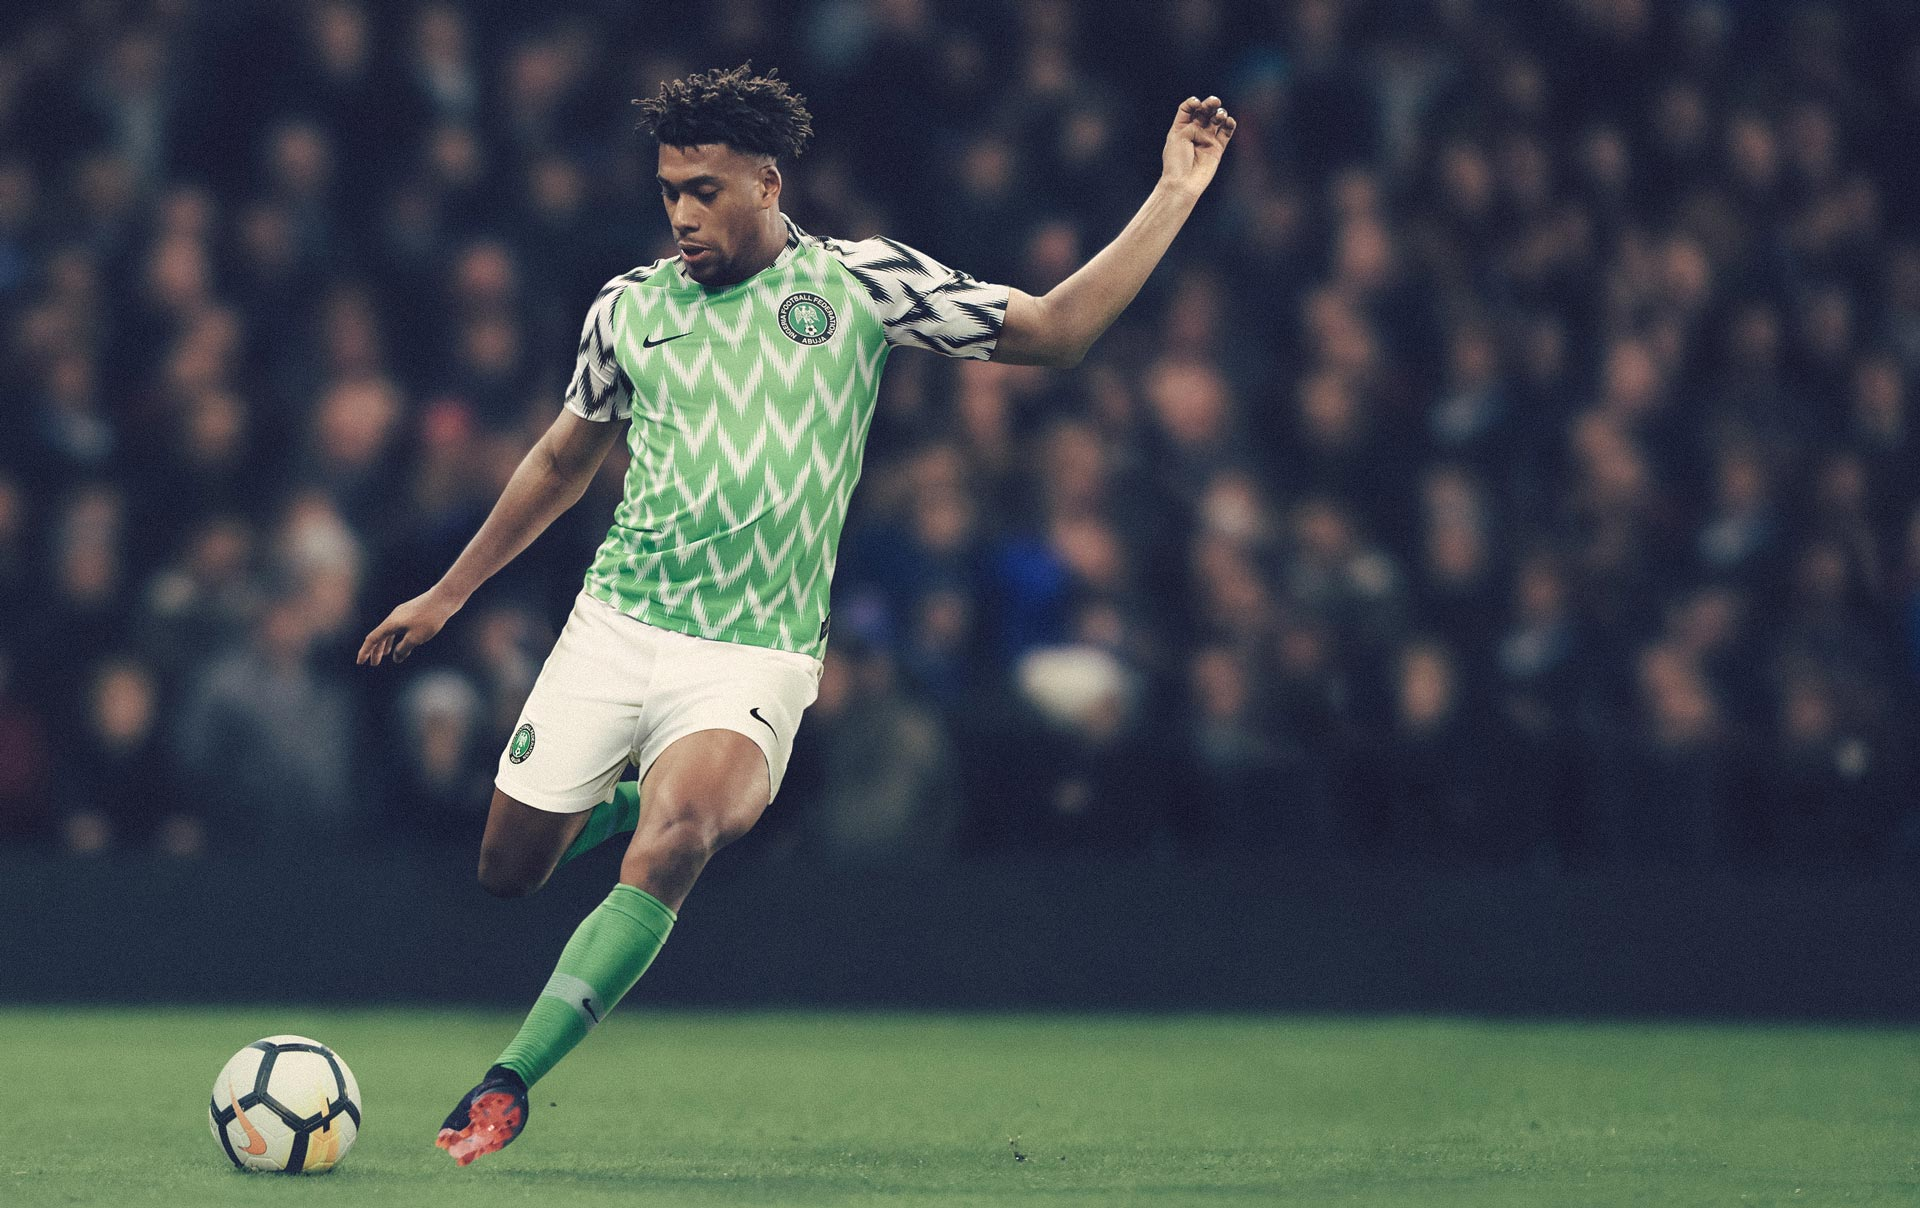 Alex Iwobi NAIJA Nigeria World Cup Nike Kits Jerseys Collection Matthew Wolff Design 2018 Super Eagles HOME